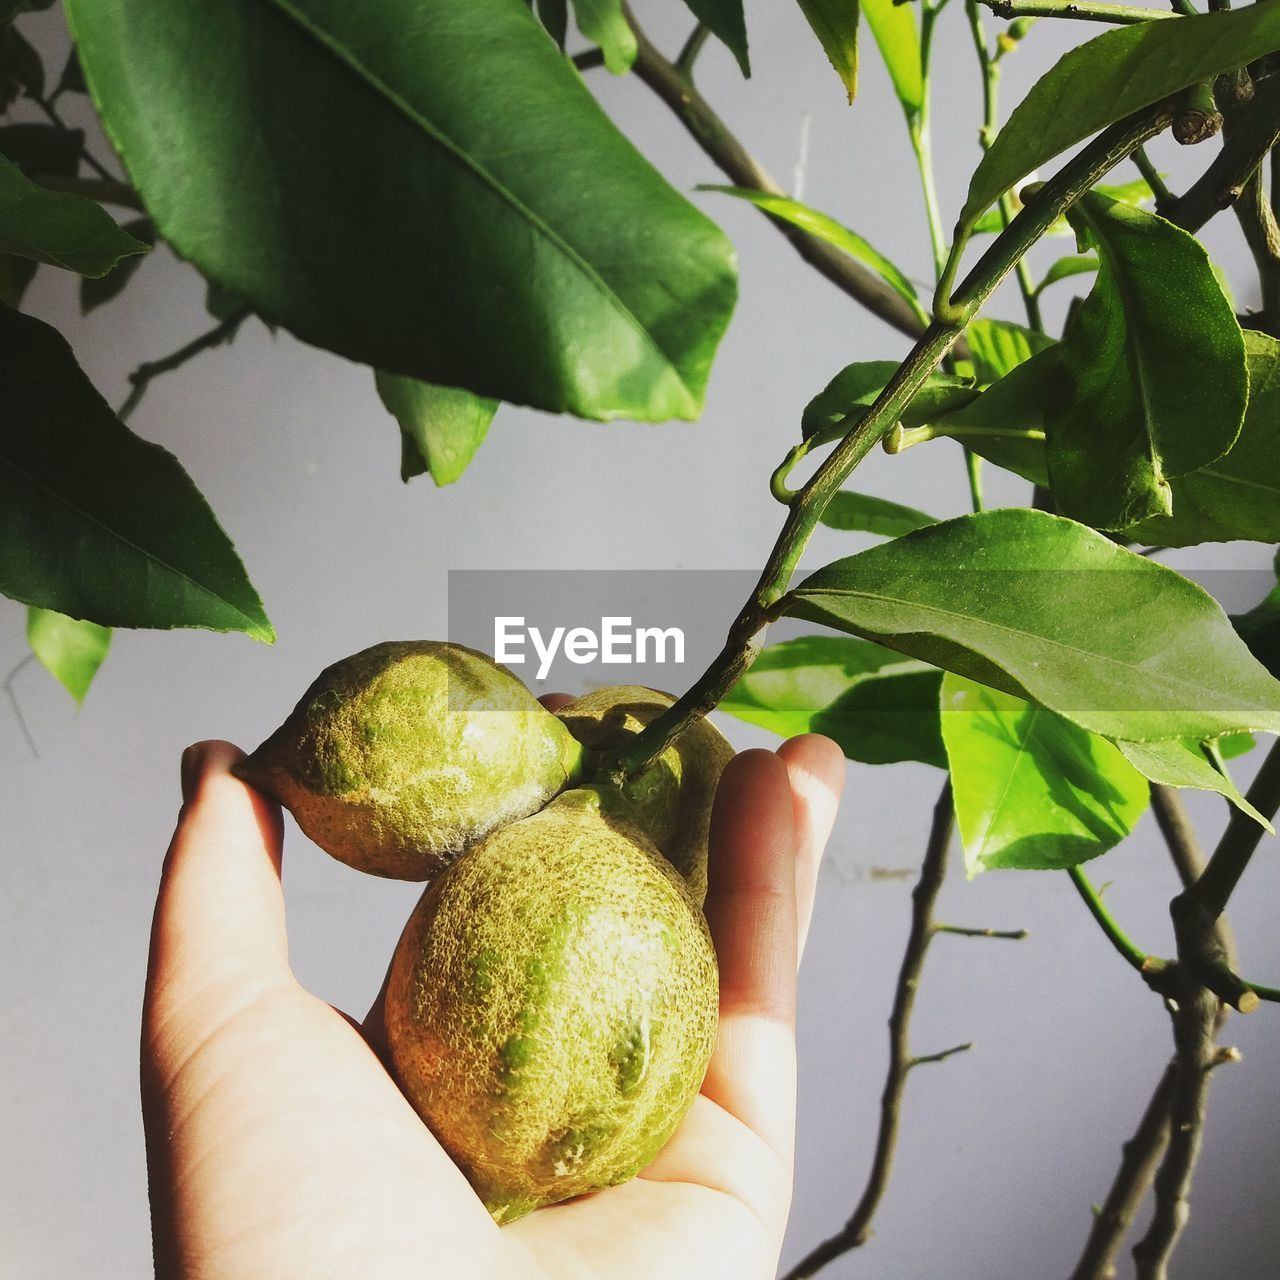 leaf, fruit, human hand, green color, food and drink, food, holding, freshness, healthy eating, growth, human body part, plant, one person, real people, outdoors, day, close-up, citrus fruit, nature, tree